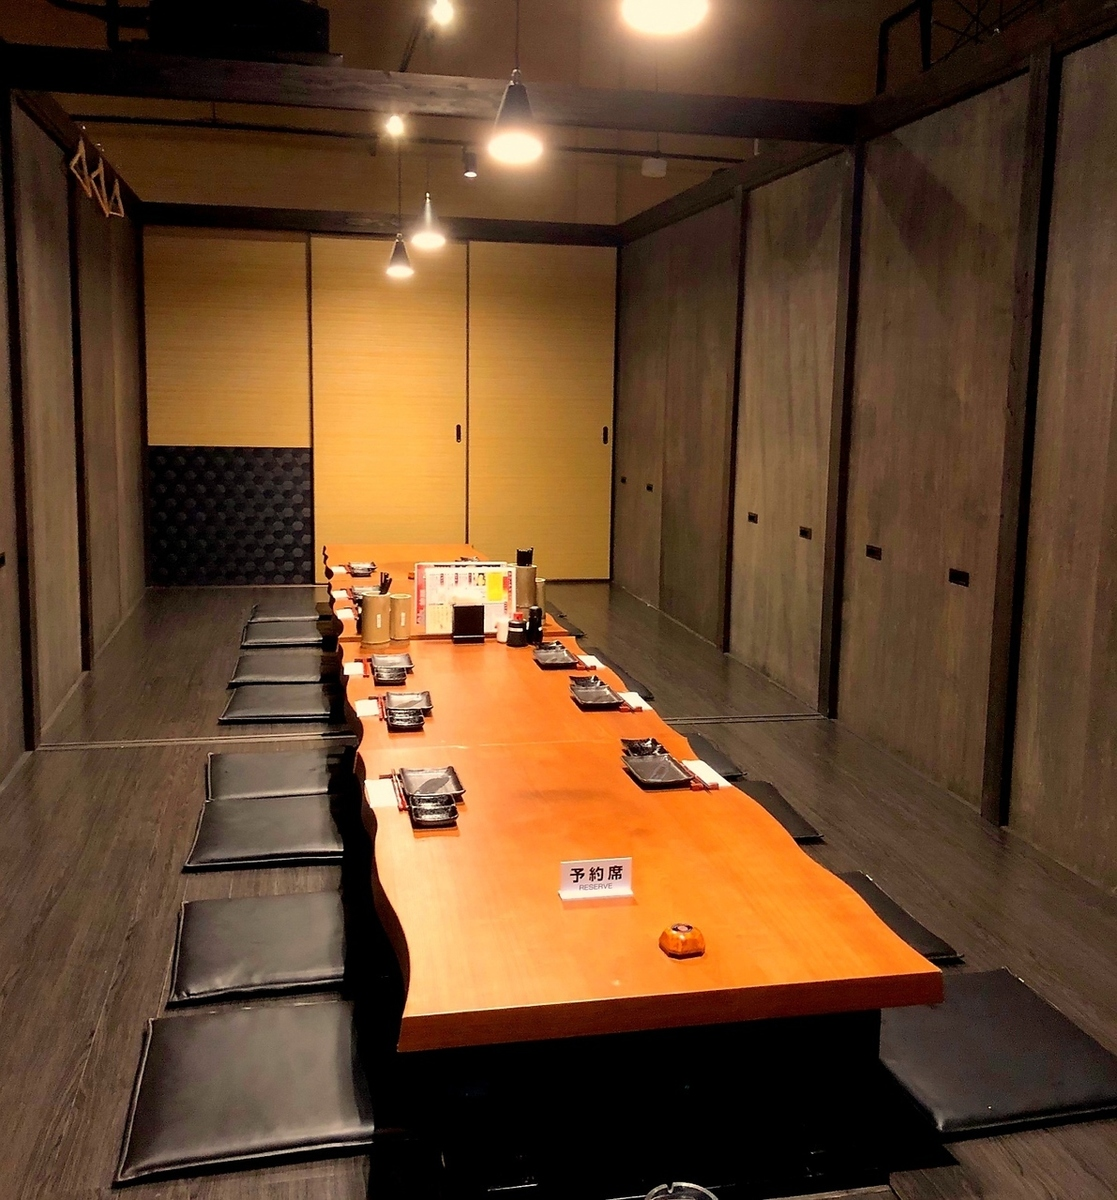 One room can accommodate 16 people, even a large number of people can pull out the horizontal partition